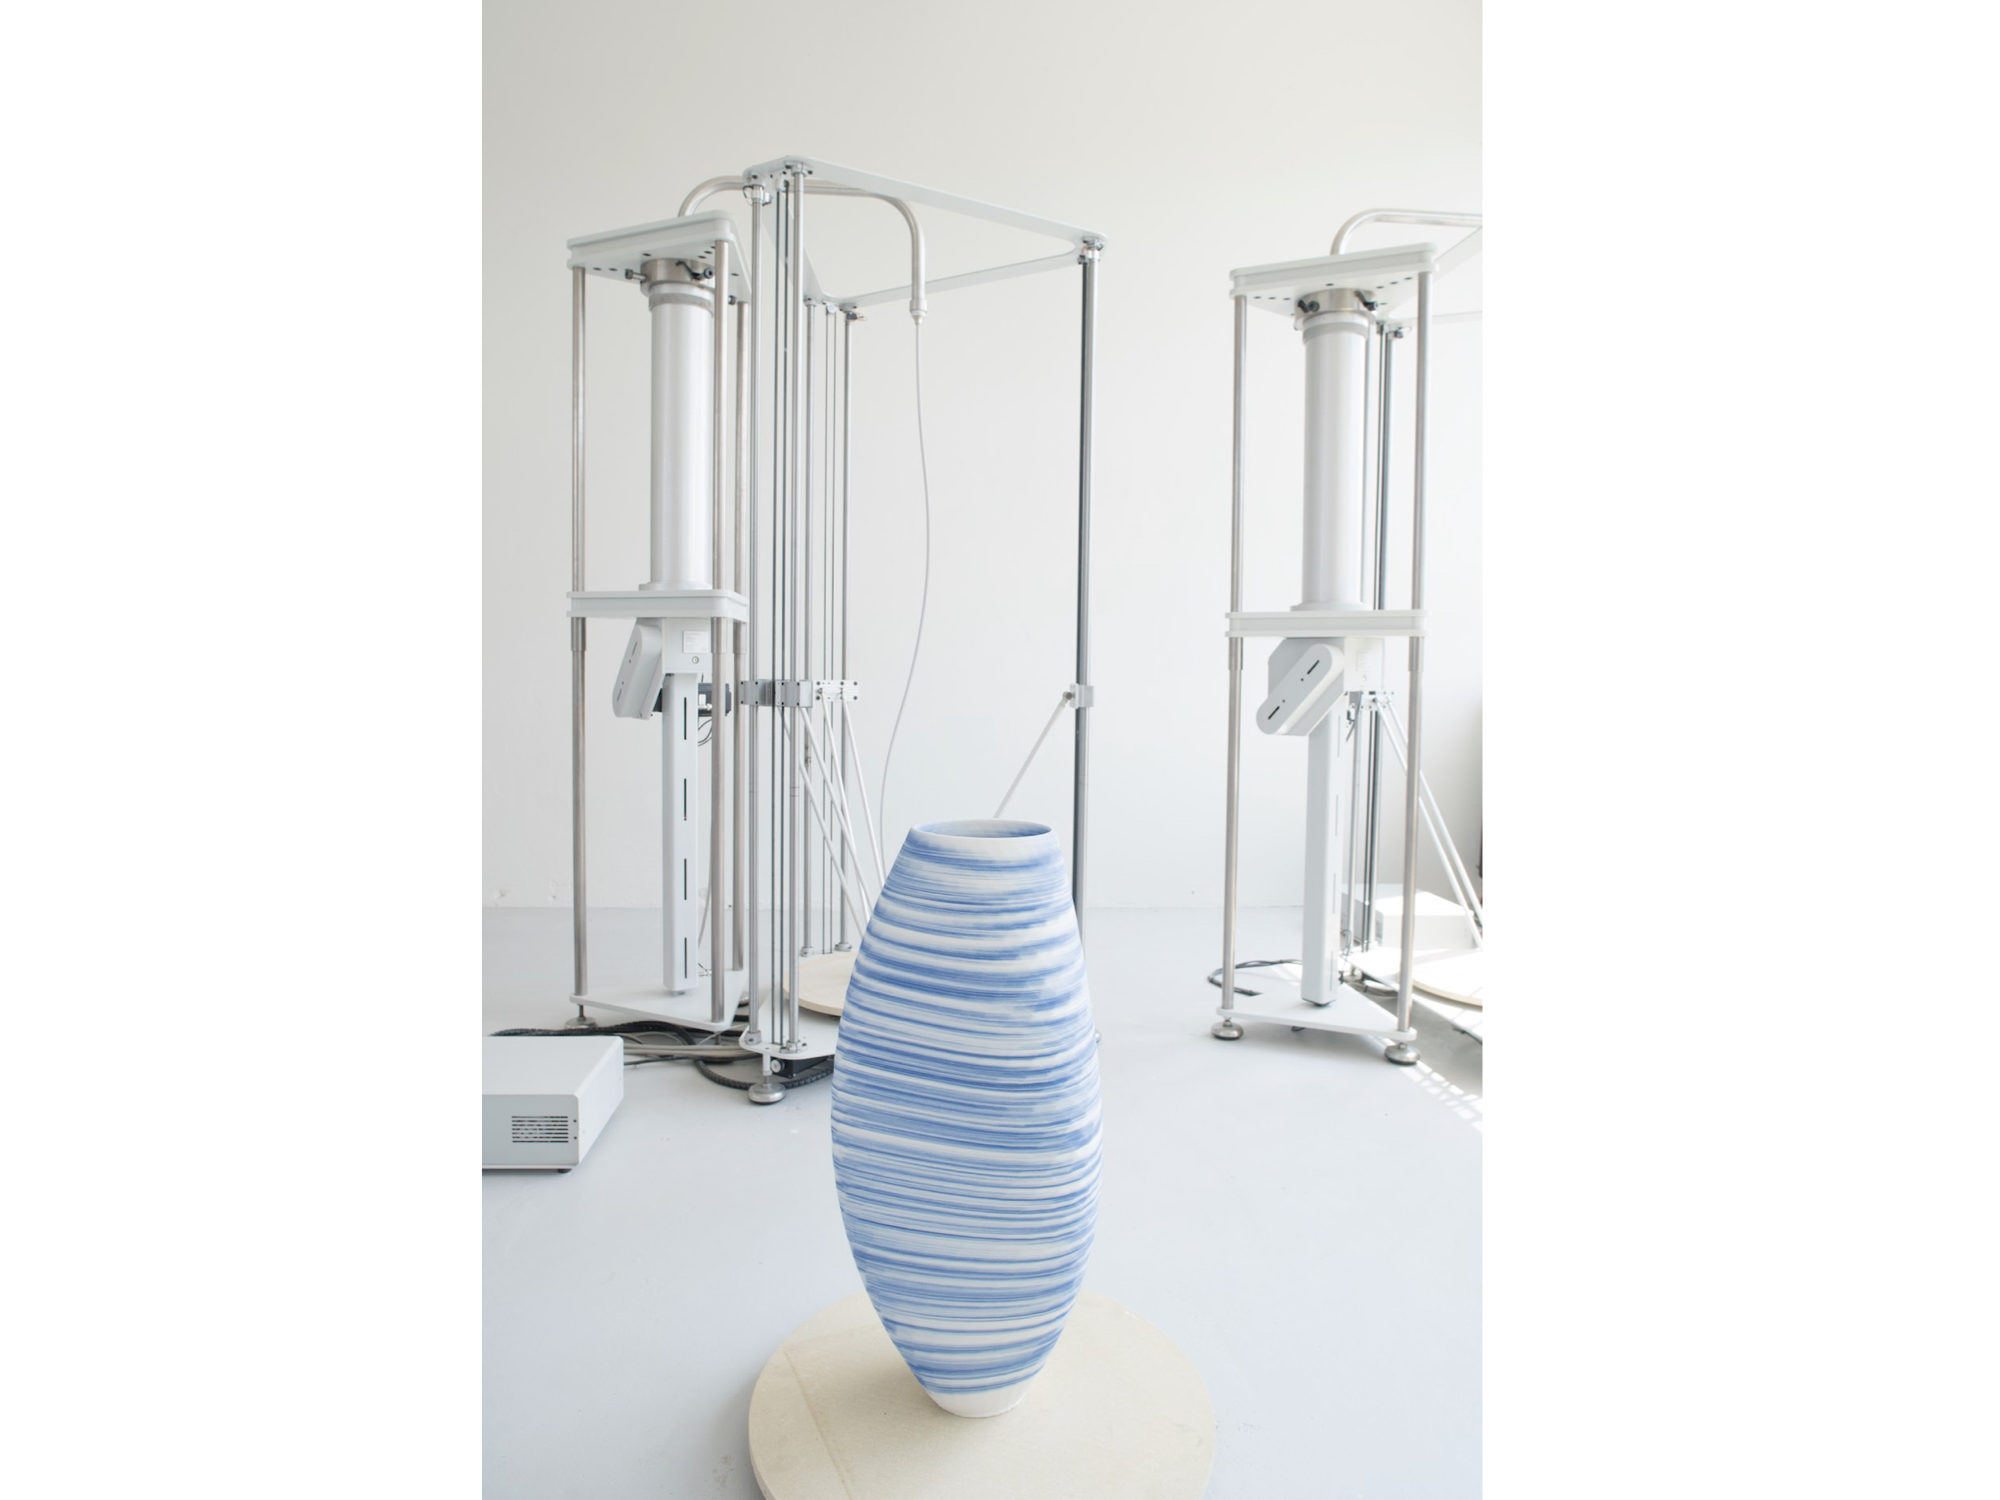 3D printed Delftware vase. Photo via Olivier Van Herpt.